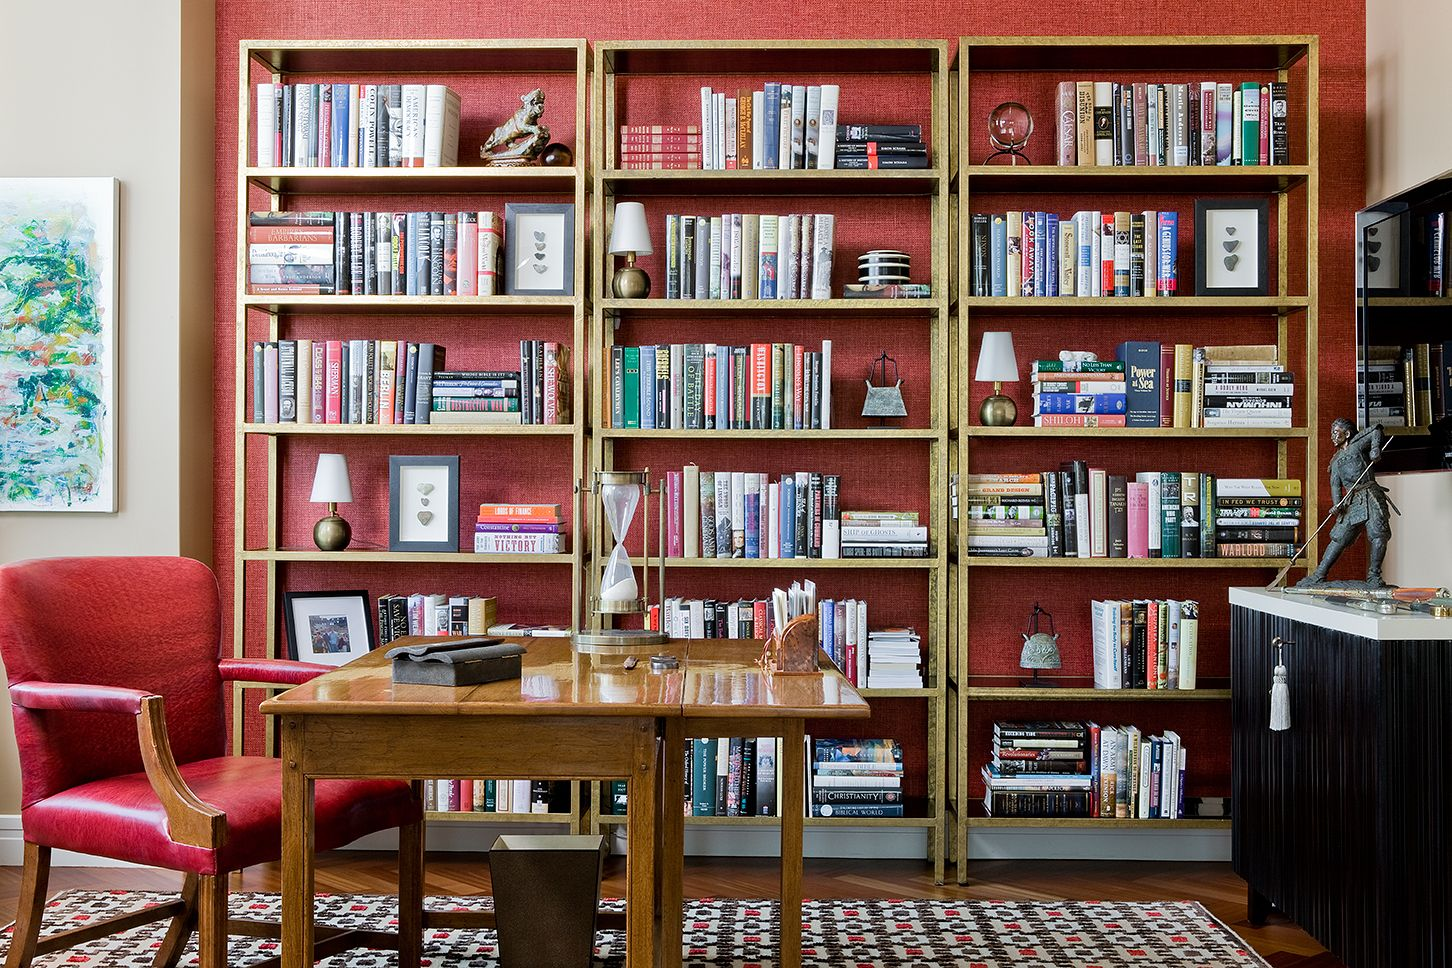 Home Librarys 35 best home library ideas - reading nooks at home